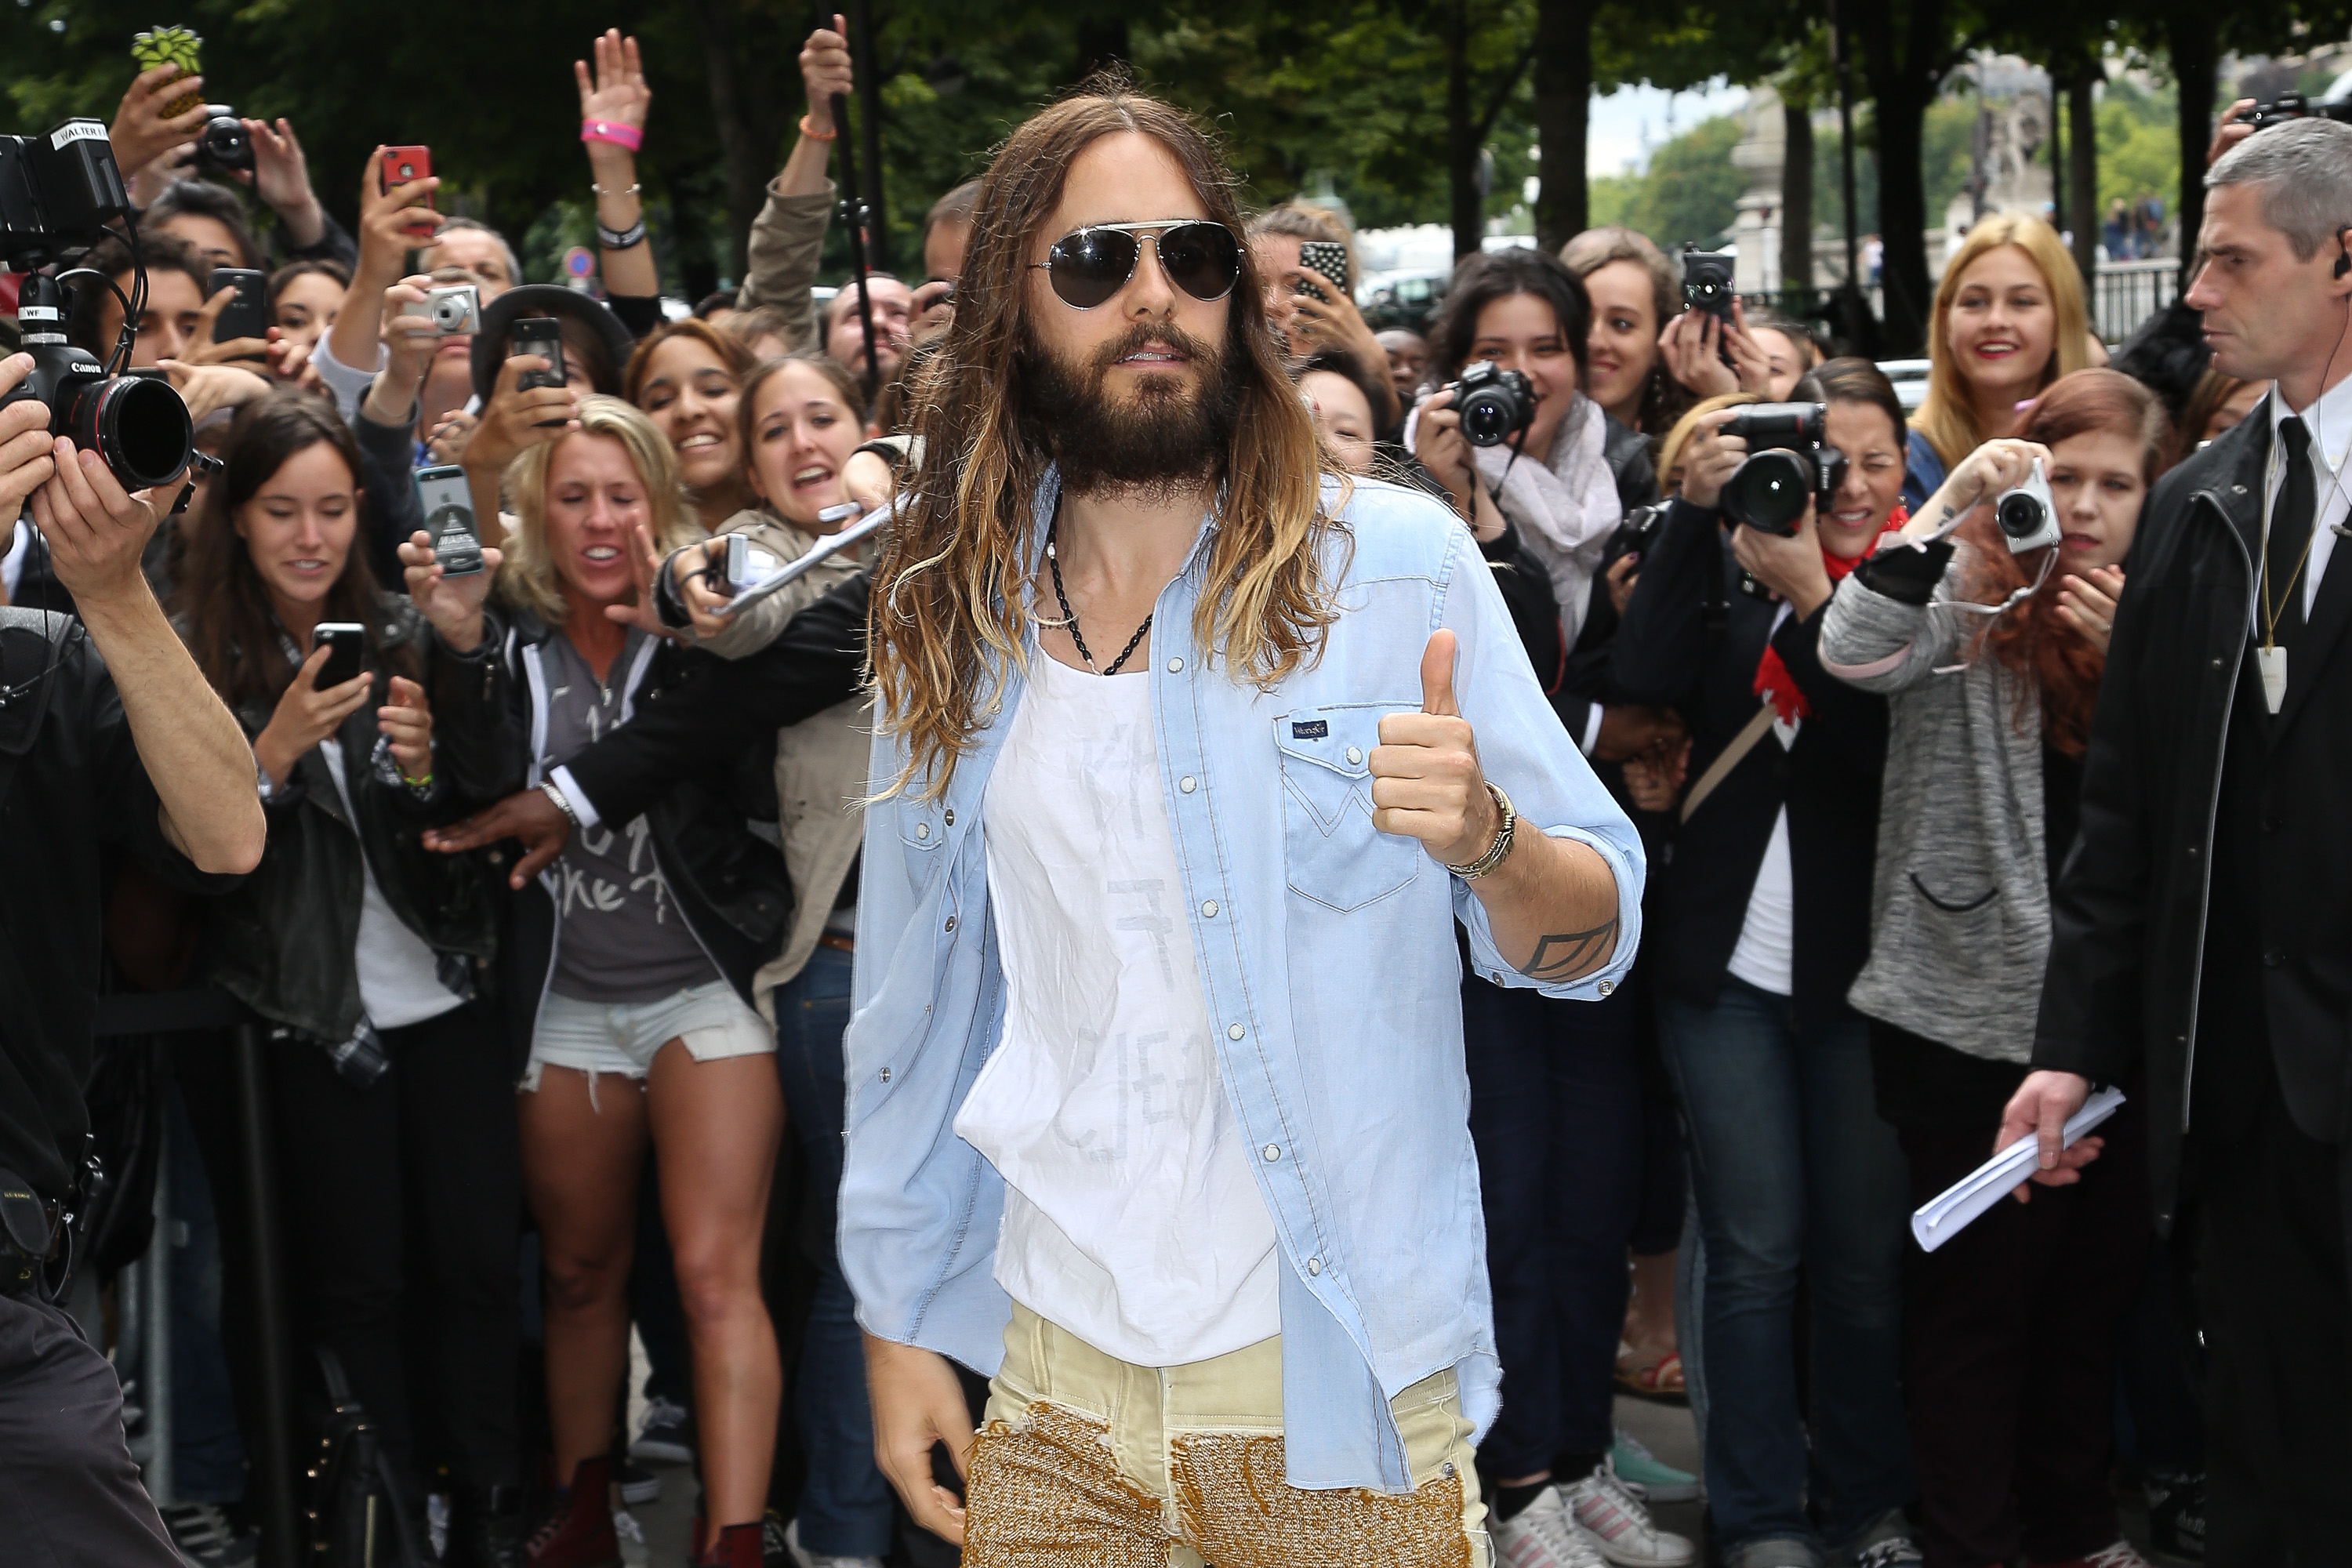 PARIS, FRANCE - JULY 08:  Actor and singer Jared Leto arrives to attend the Chanel show as part of Paris Fashion Week - Haute